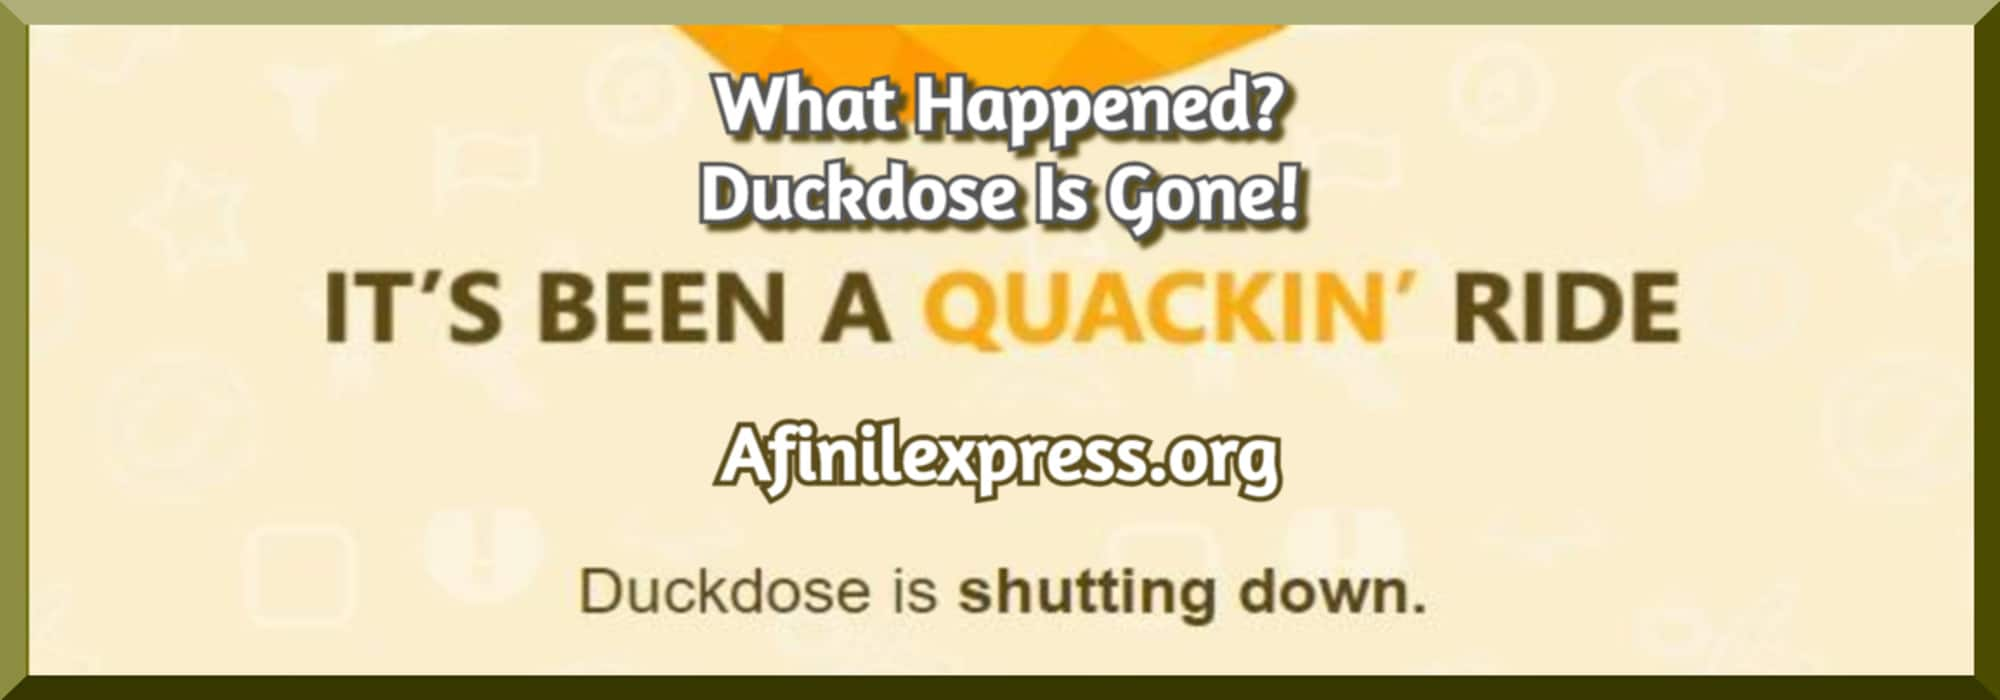 duckdose is closed, afinilexpress.org